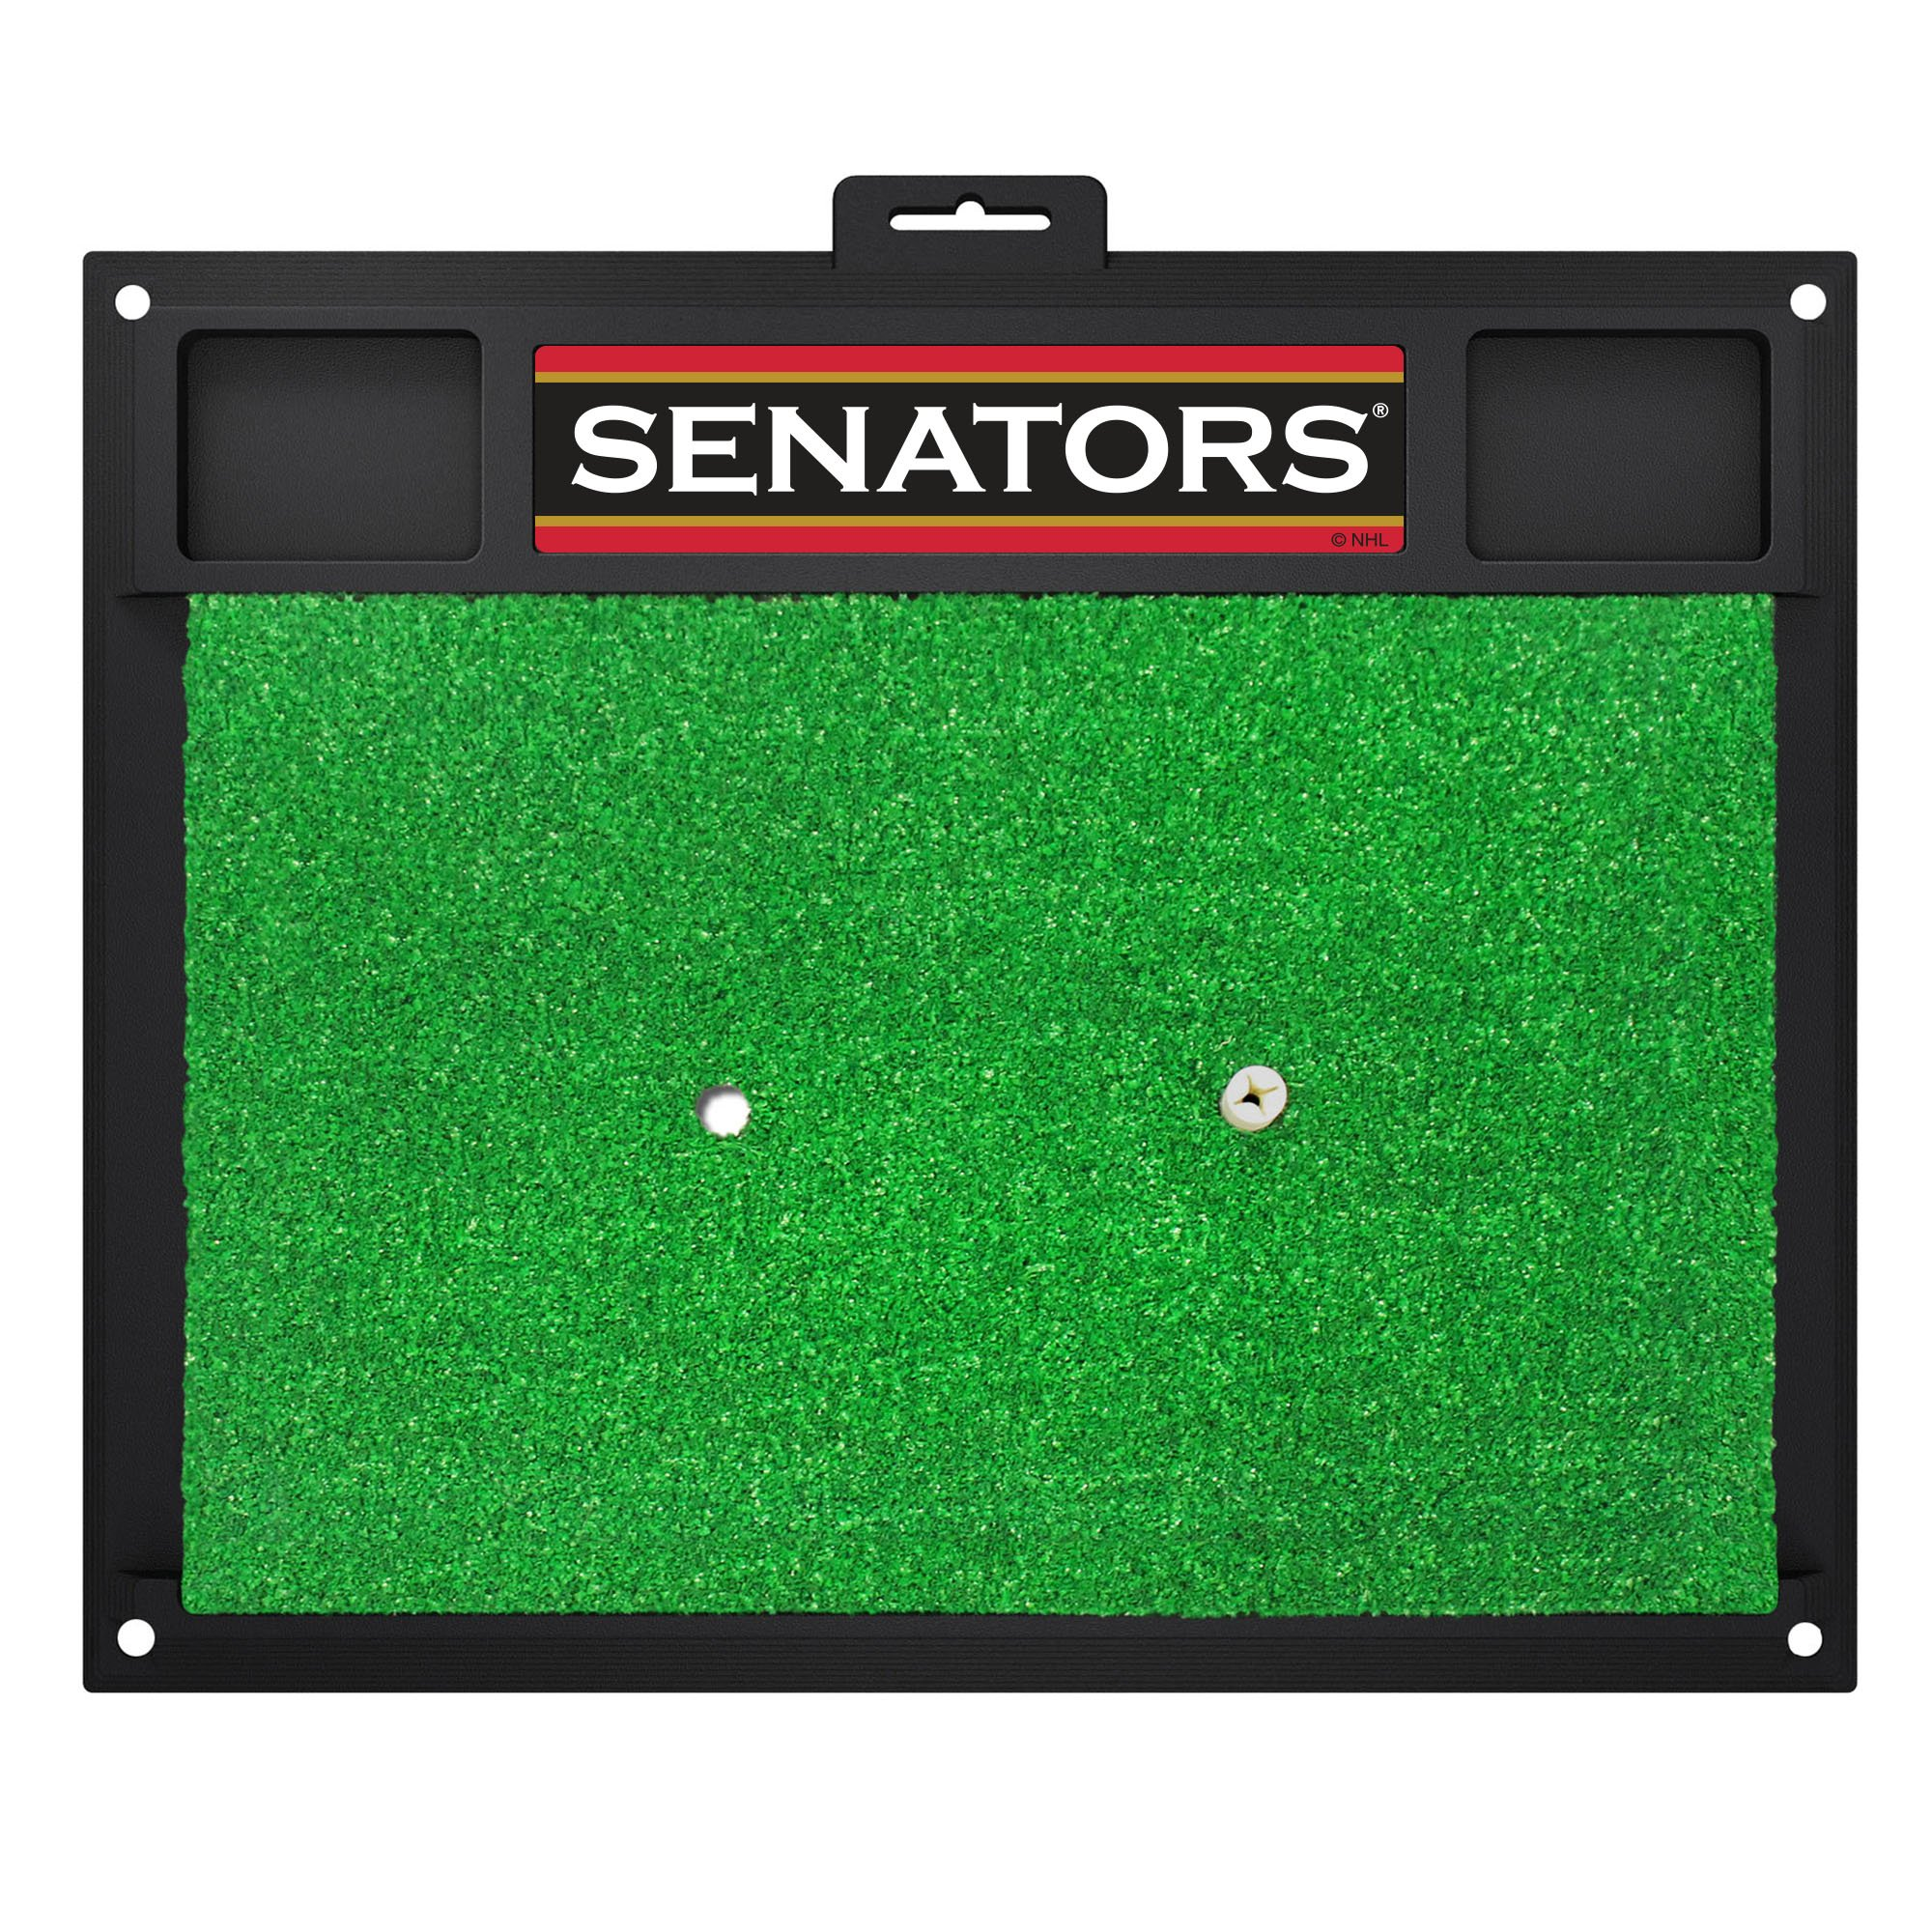 Fanmats 17046 Team Color 20'' x 17'' NHL - Ottawa Senators Golf Hitting Mat